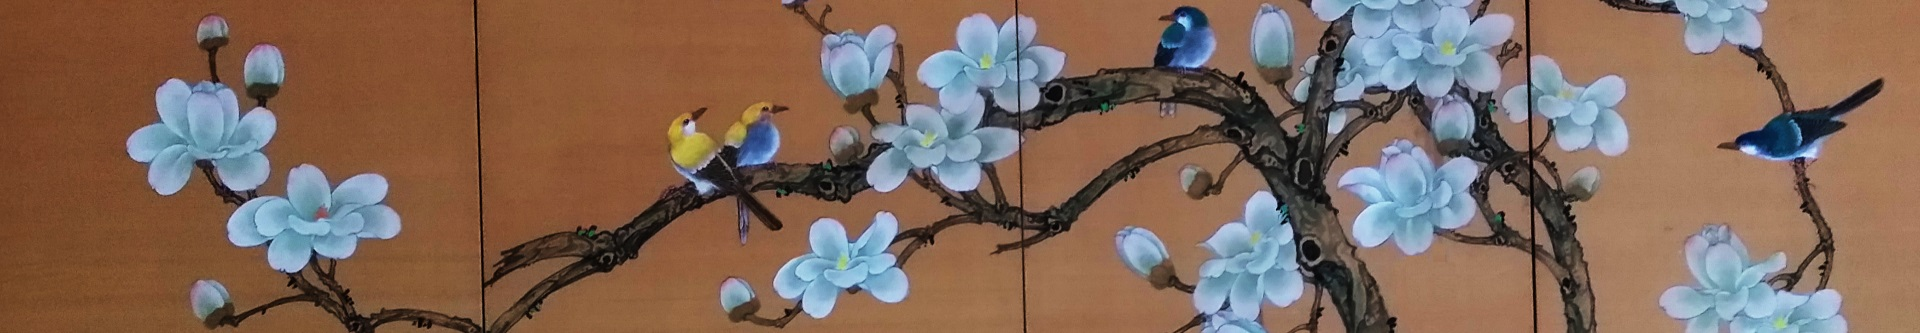 Banner - painting of blossoming branches